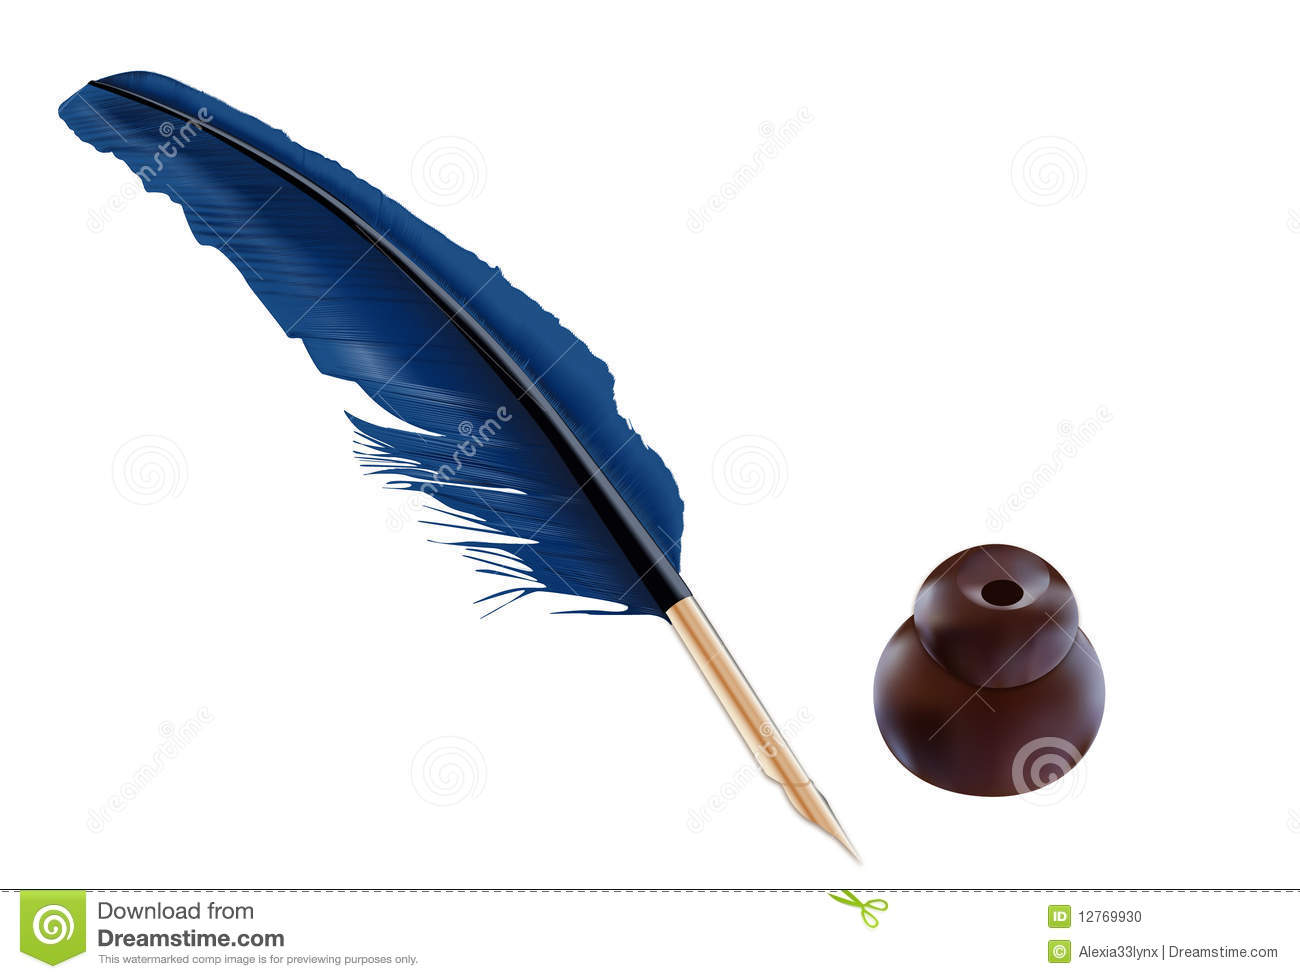 An illustration of a blue feather quill with a brown inkwell.